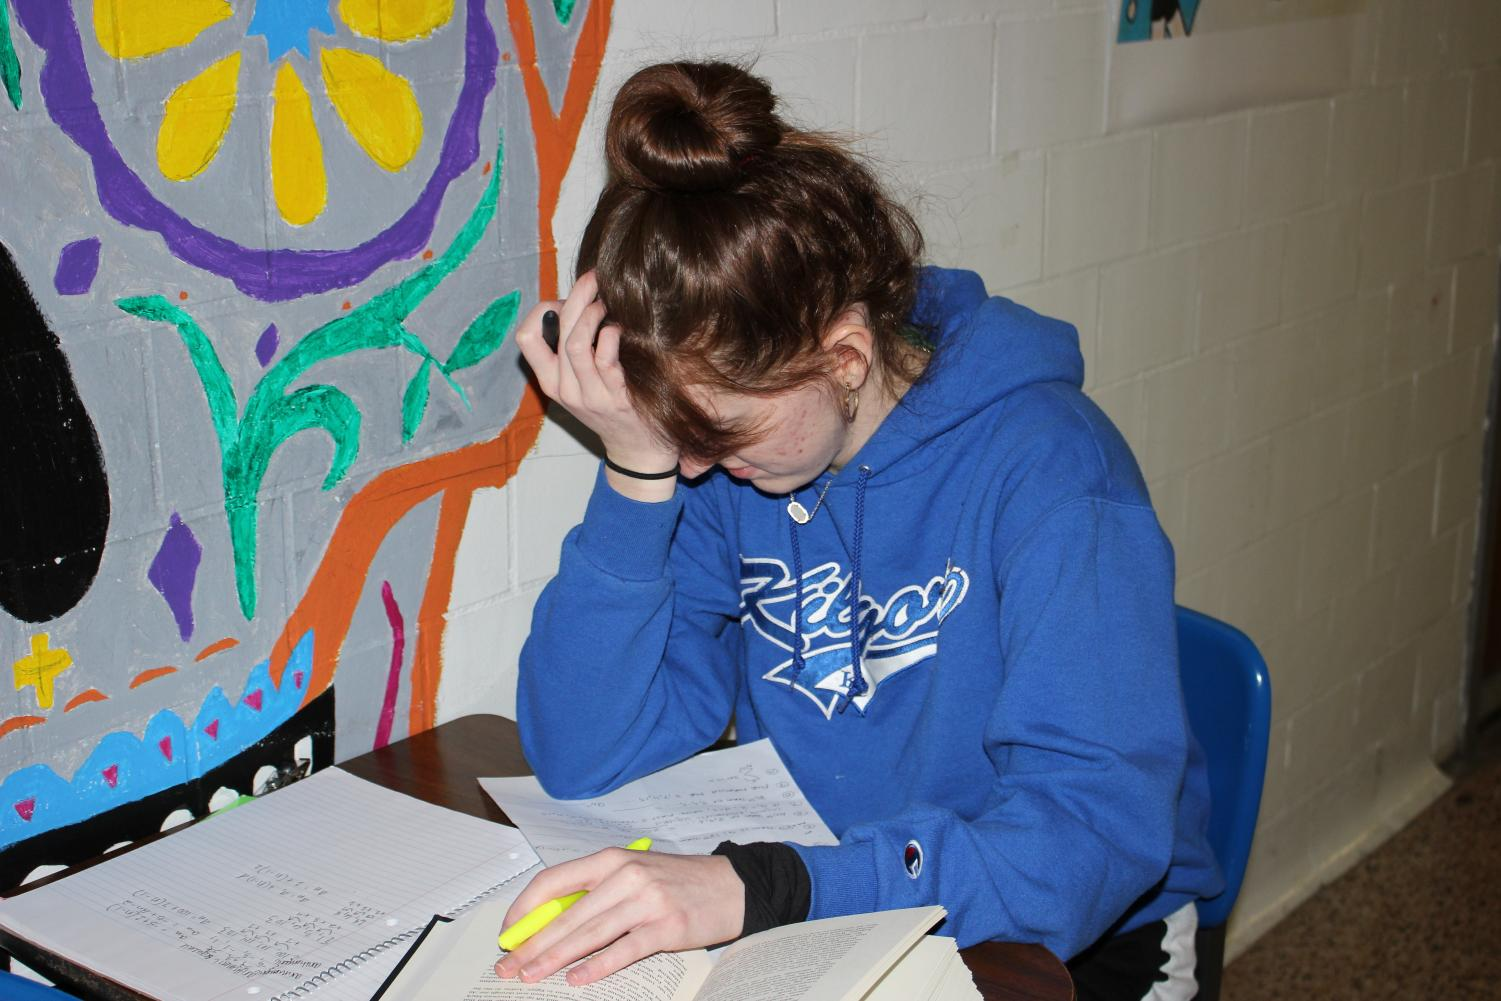 Junior Carlie Massey demonstrates how school and work can overwhelm students, leading to stress and mental breakdowns.